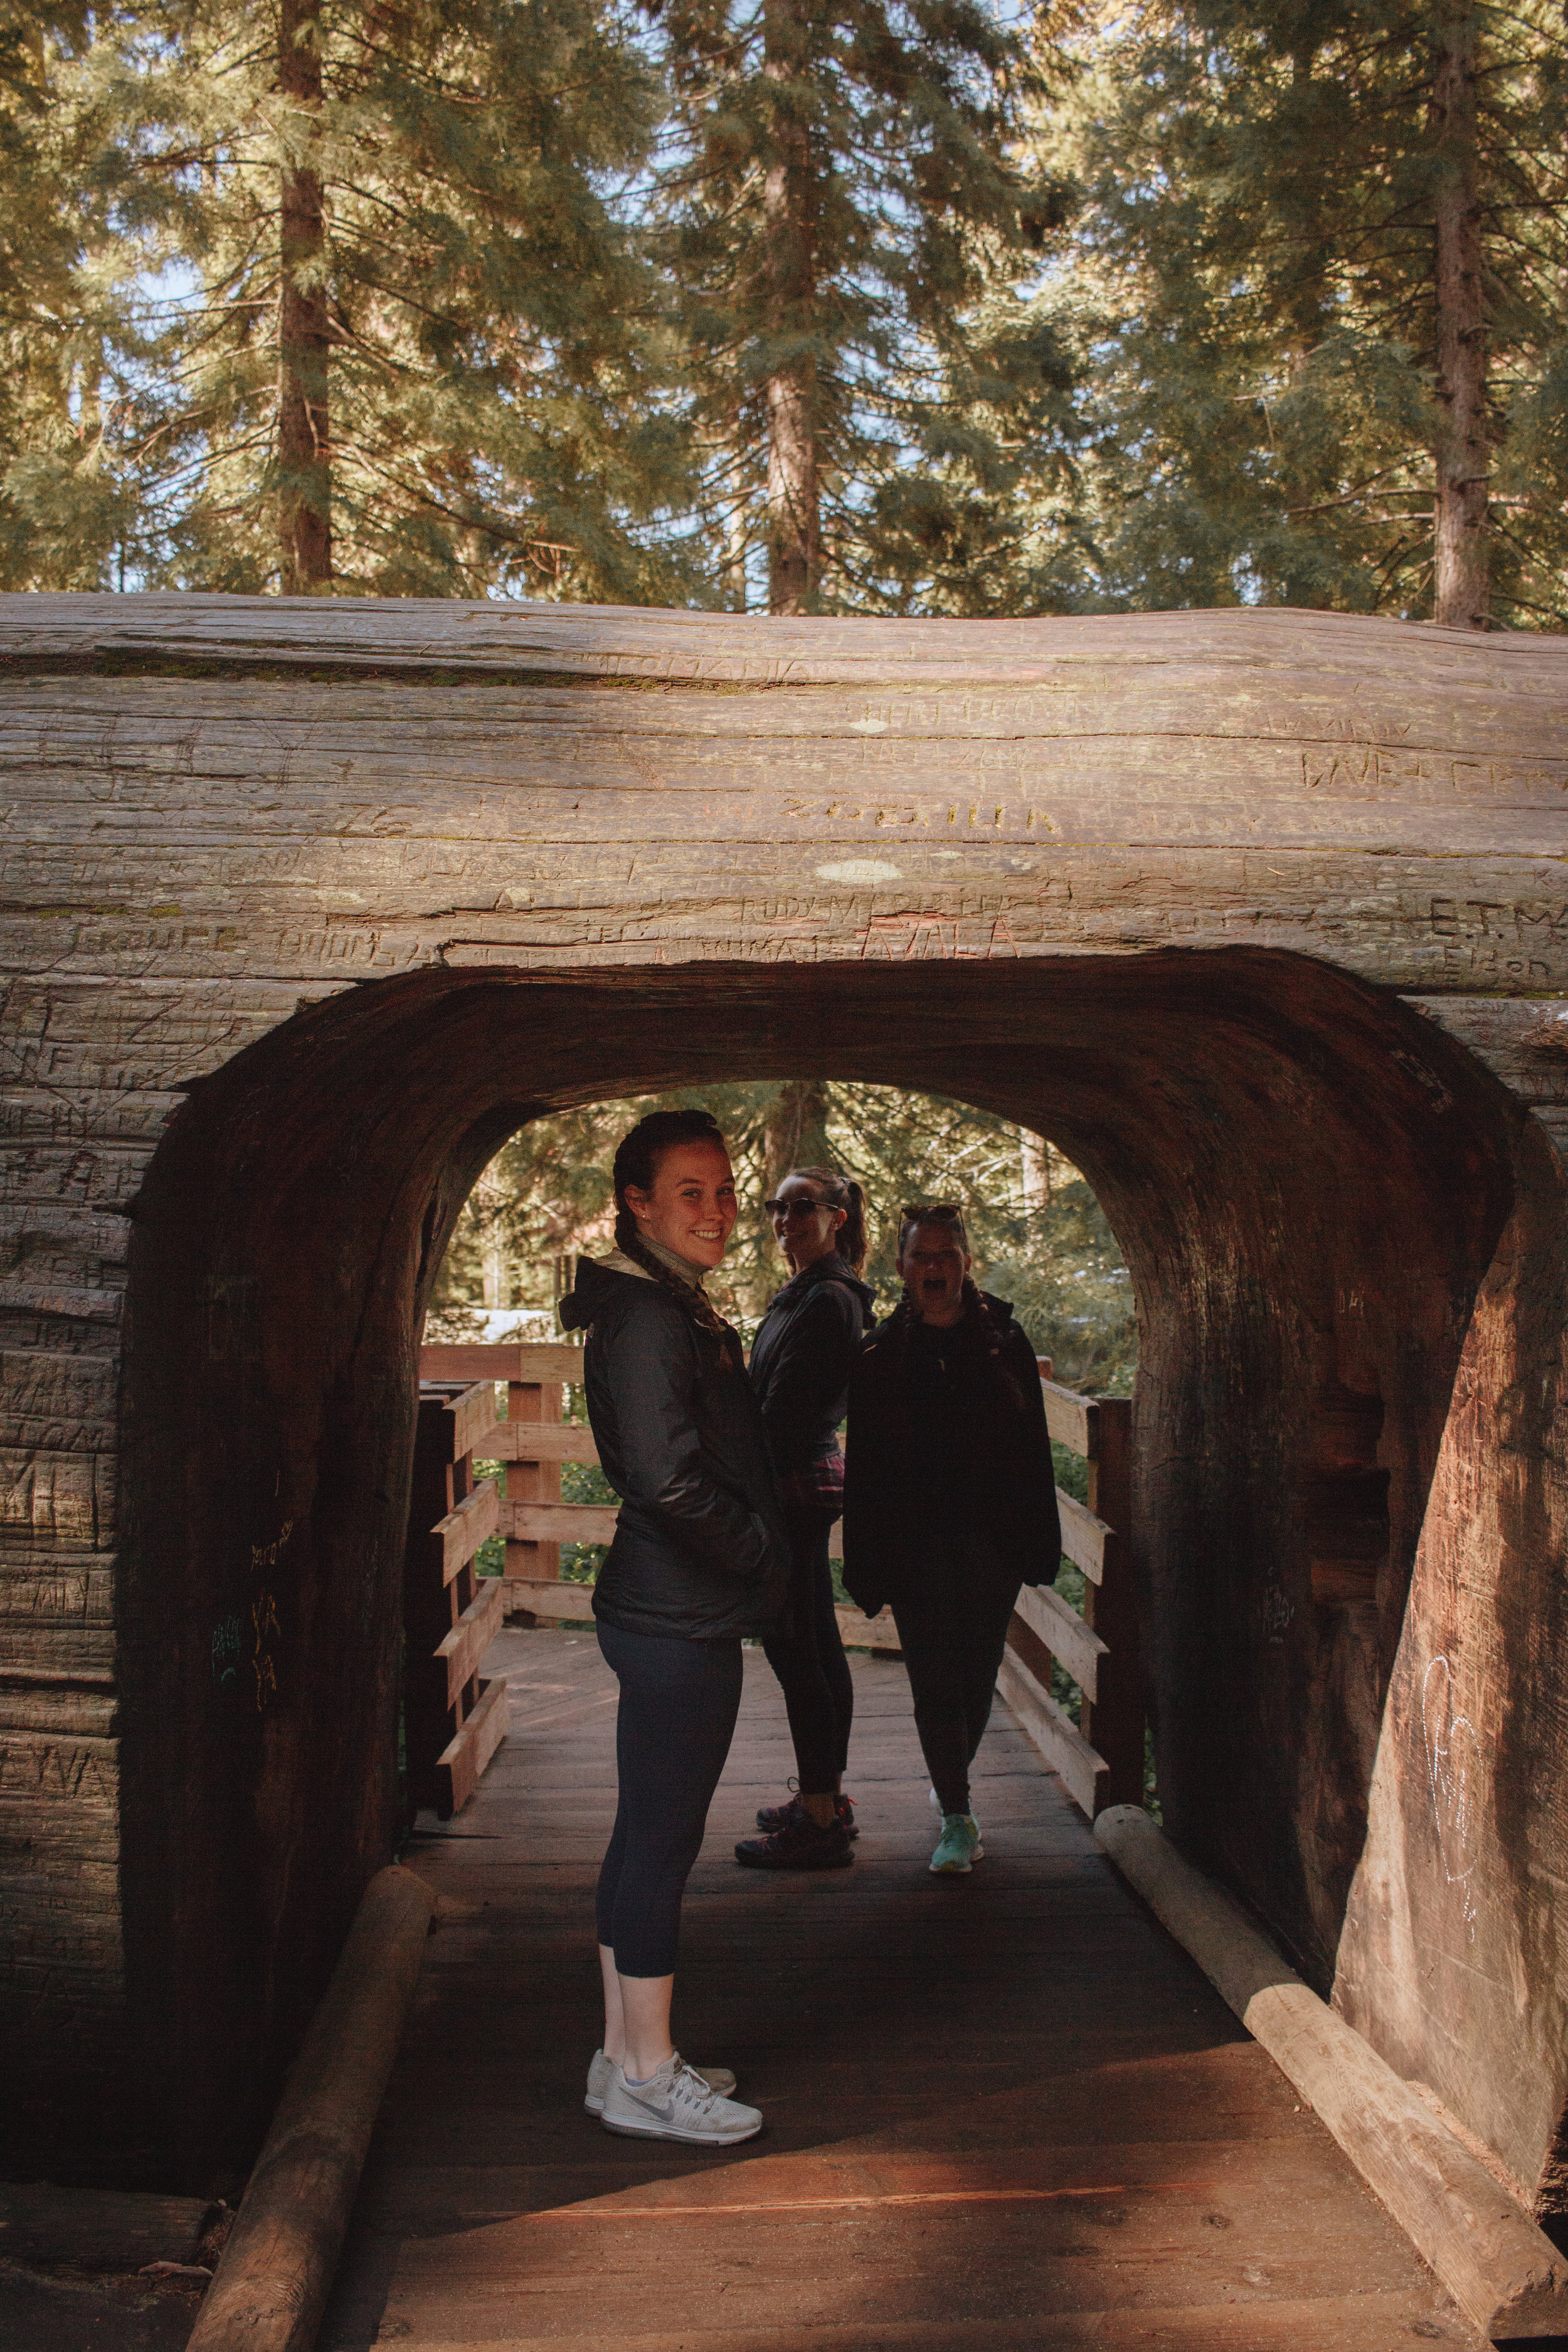 Fallen sequoias are turned into tunnels- neat, right?